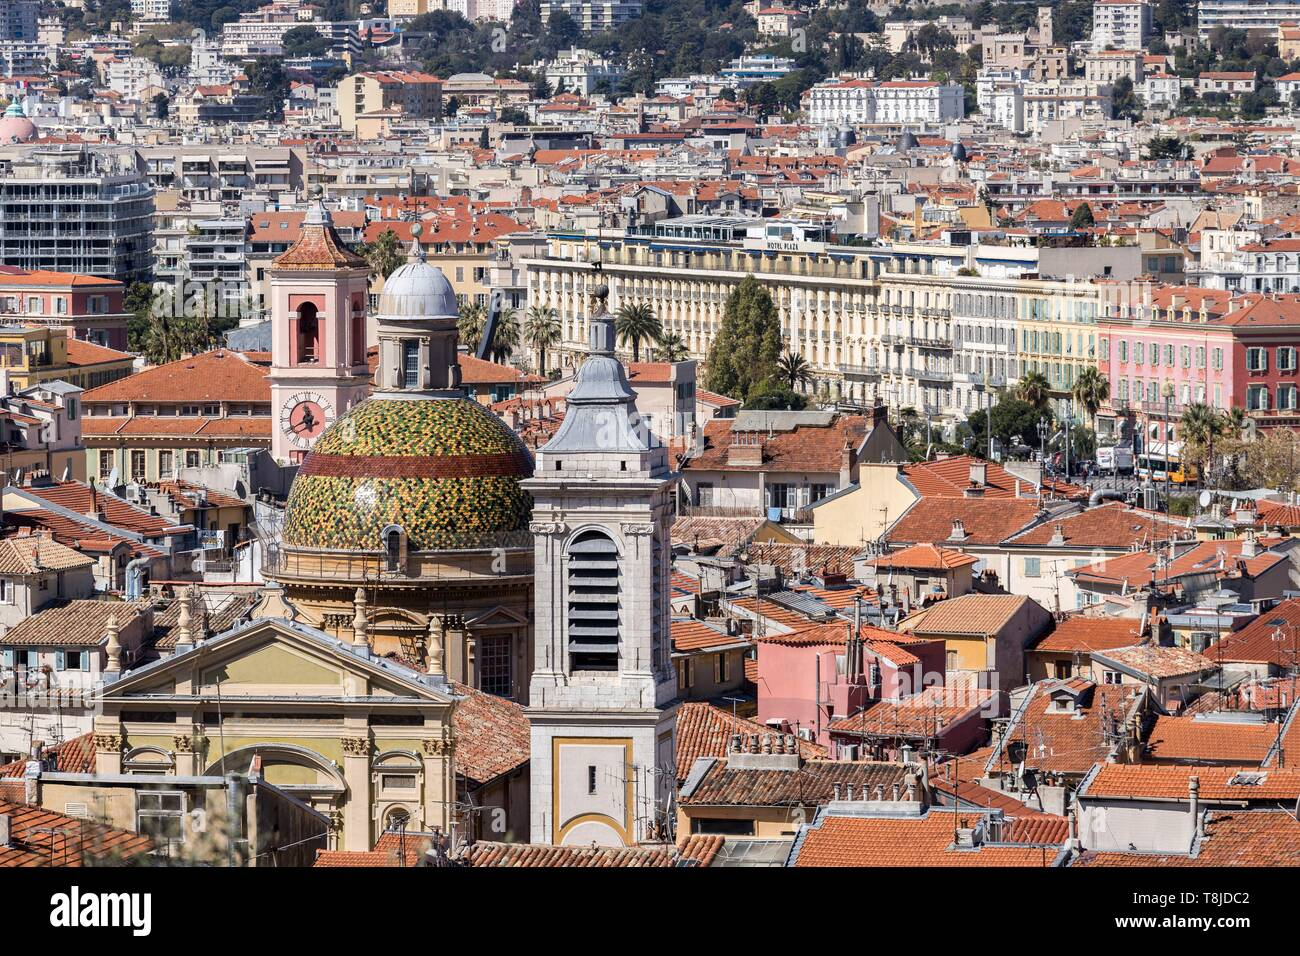 France, Alpes Maritimes, Nice, Old Nice district, dome of the Sainte Reparate Cathedral and Tour de l'Horloge on the left Stock Photo